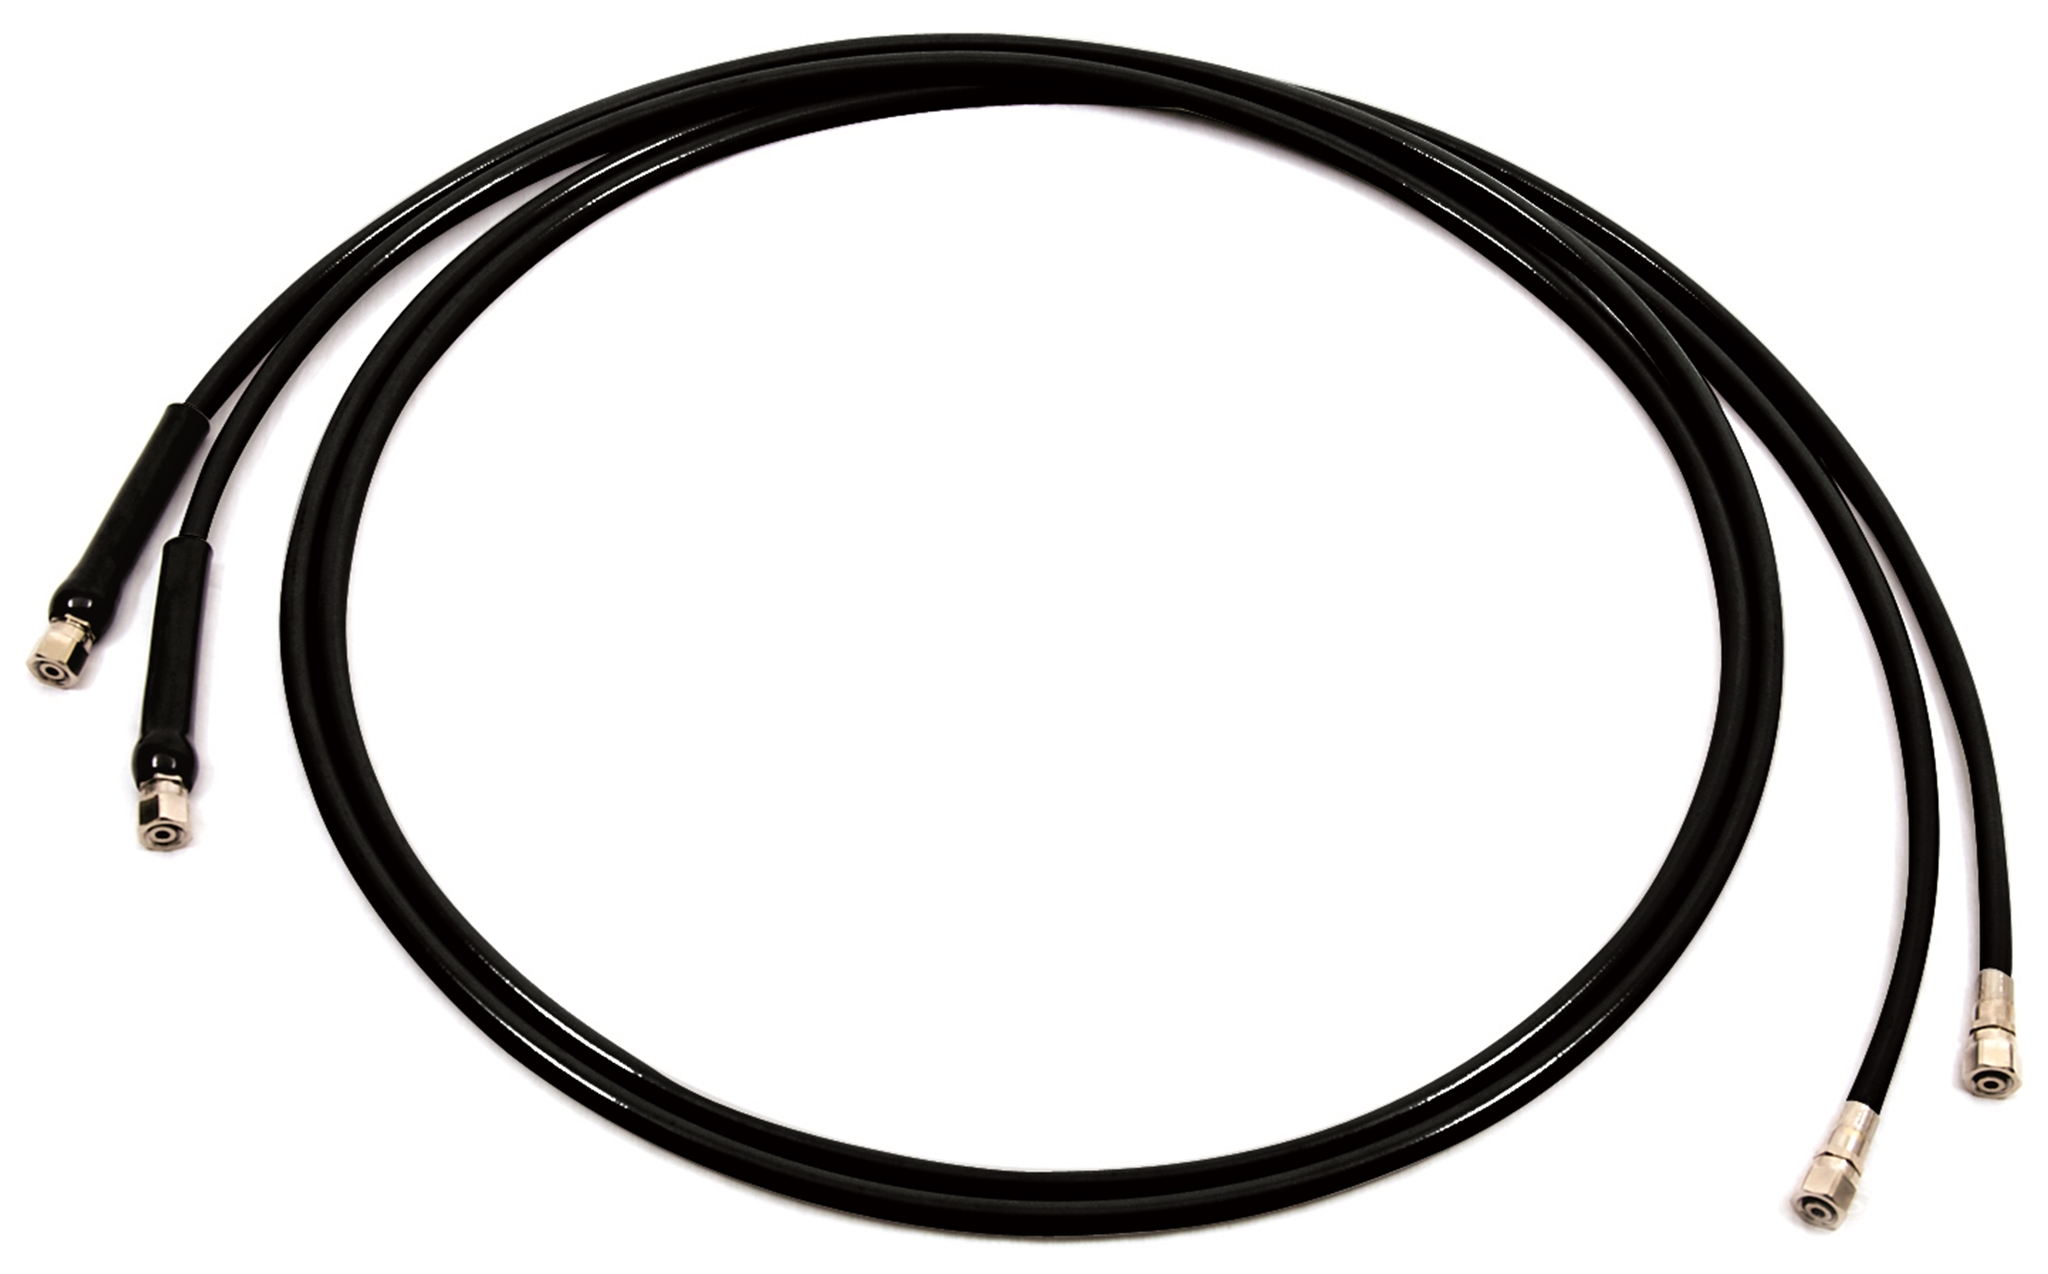 Silversteer Hose Kit With Bend Restrictors 6 FT.